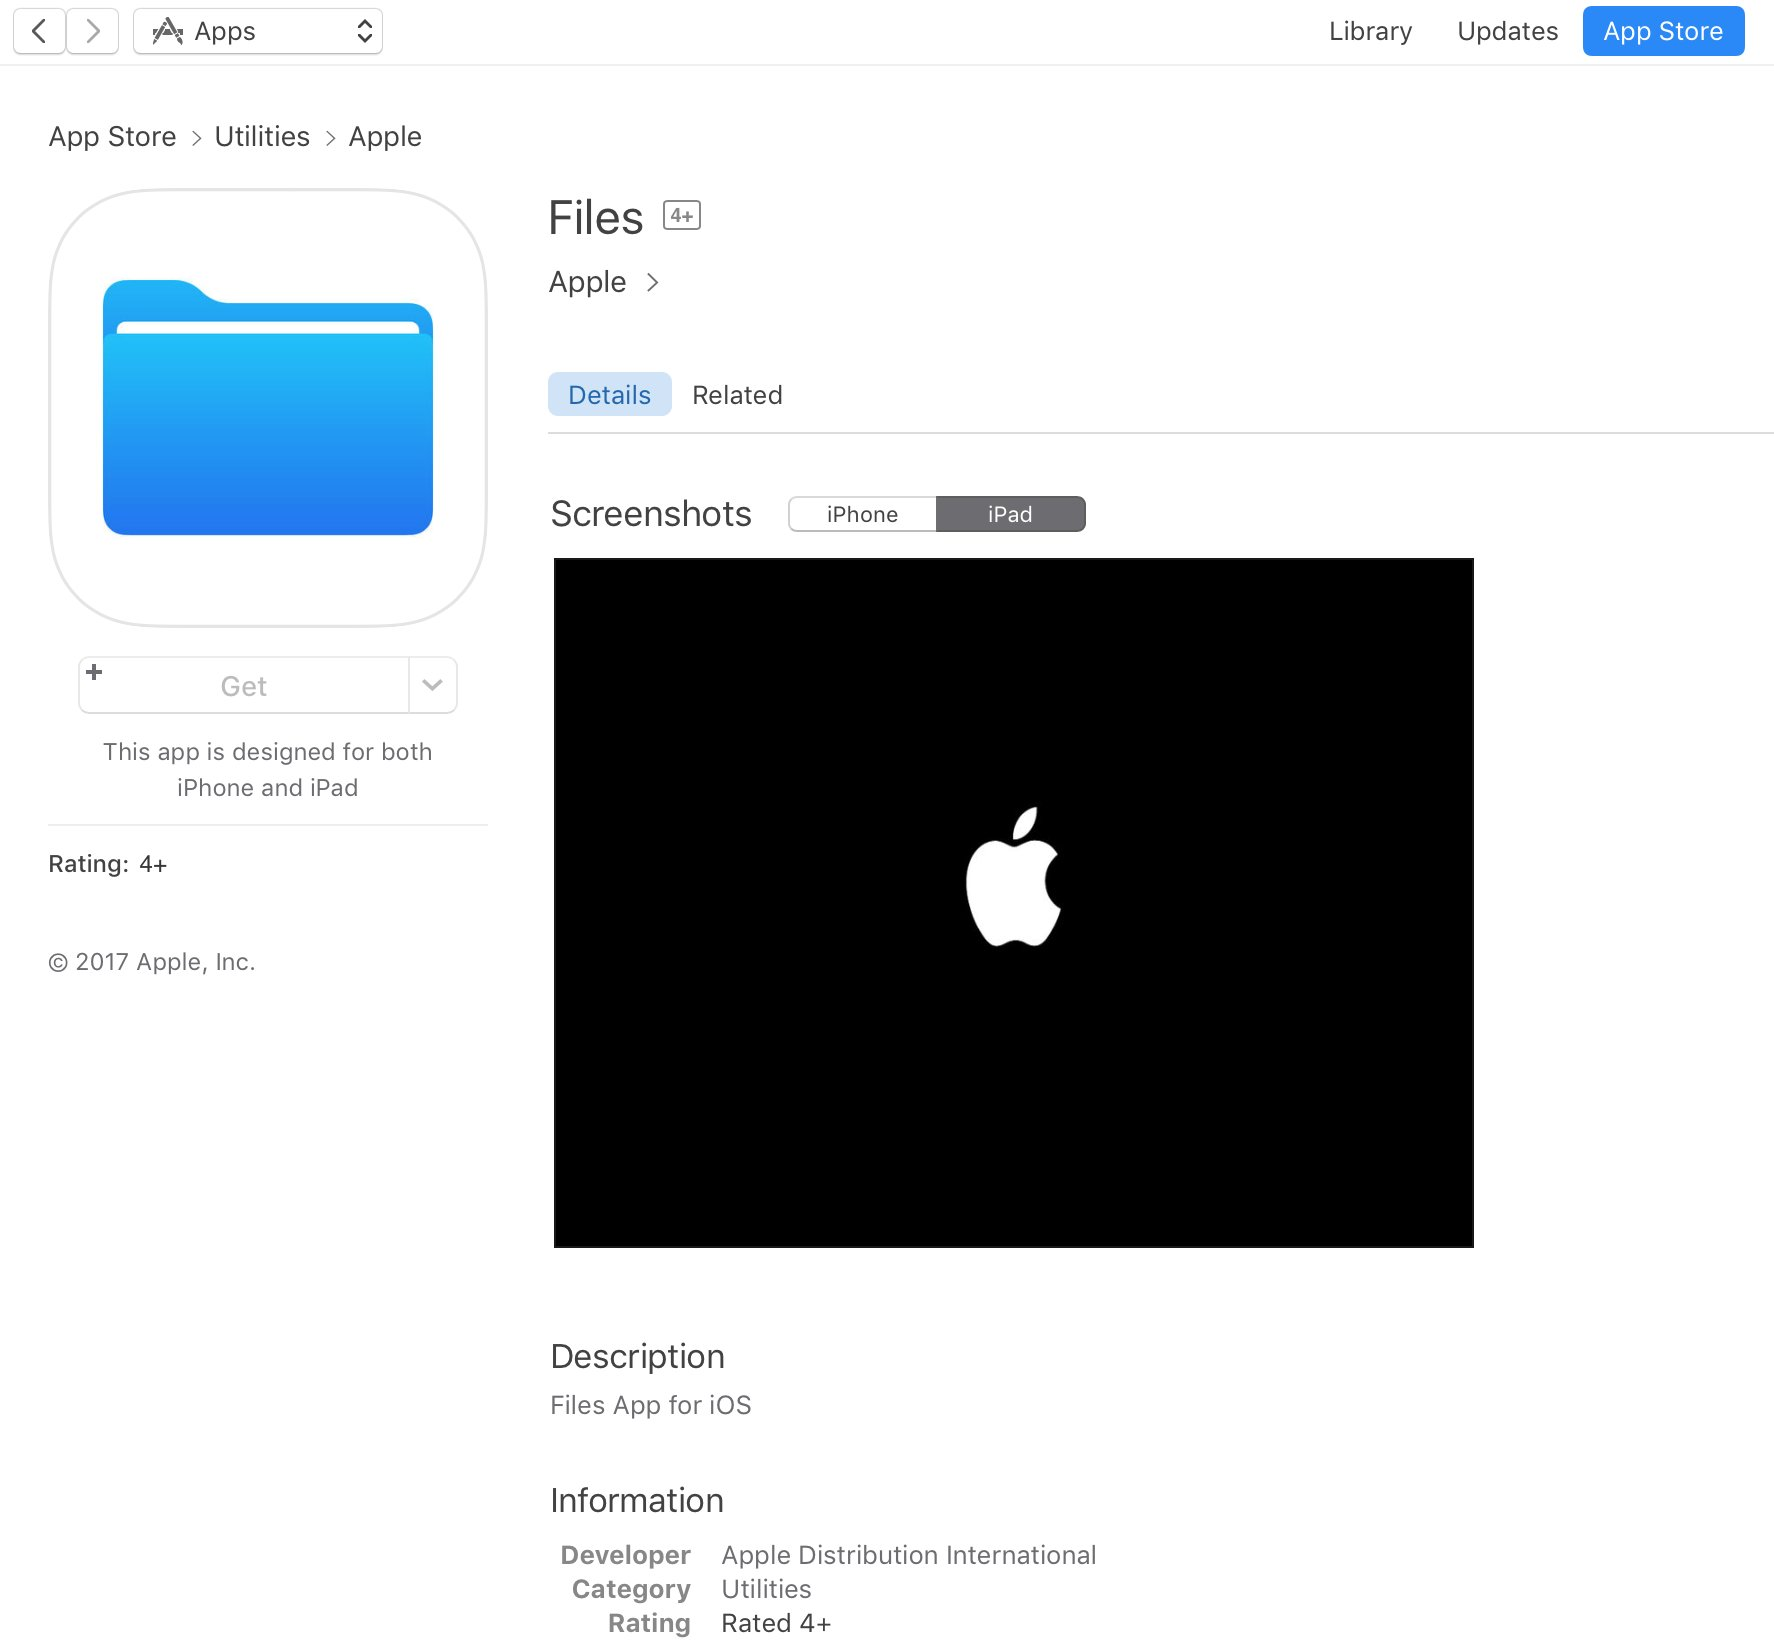 App Store placeholder listing for Apple Files app appears